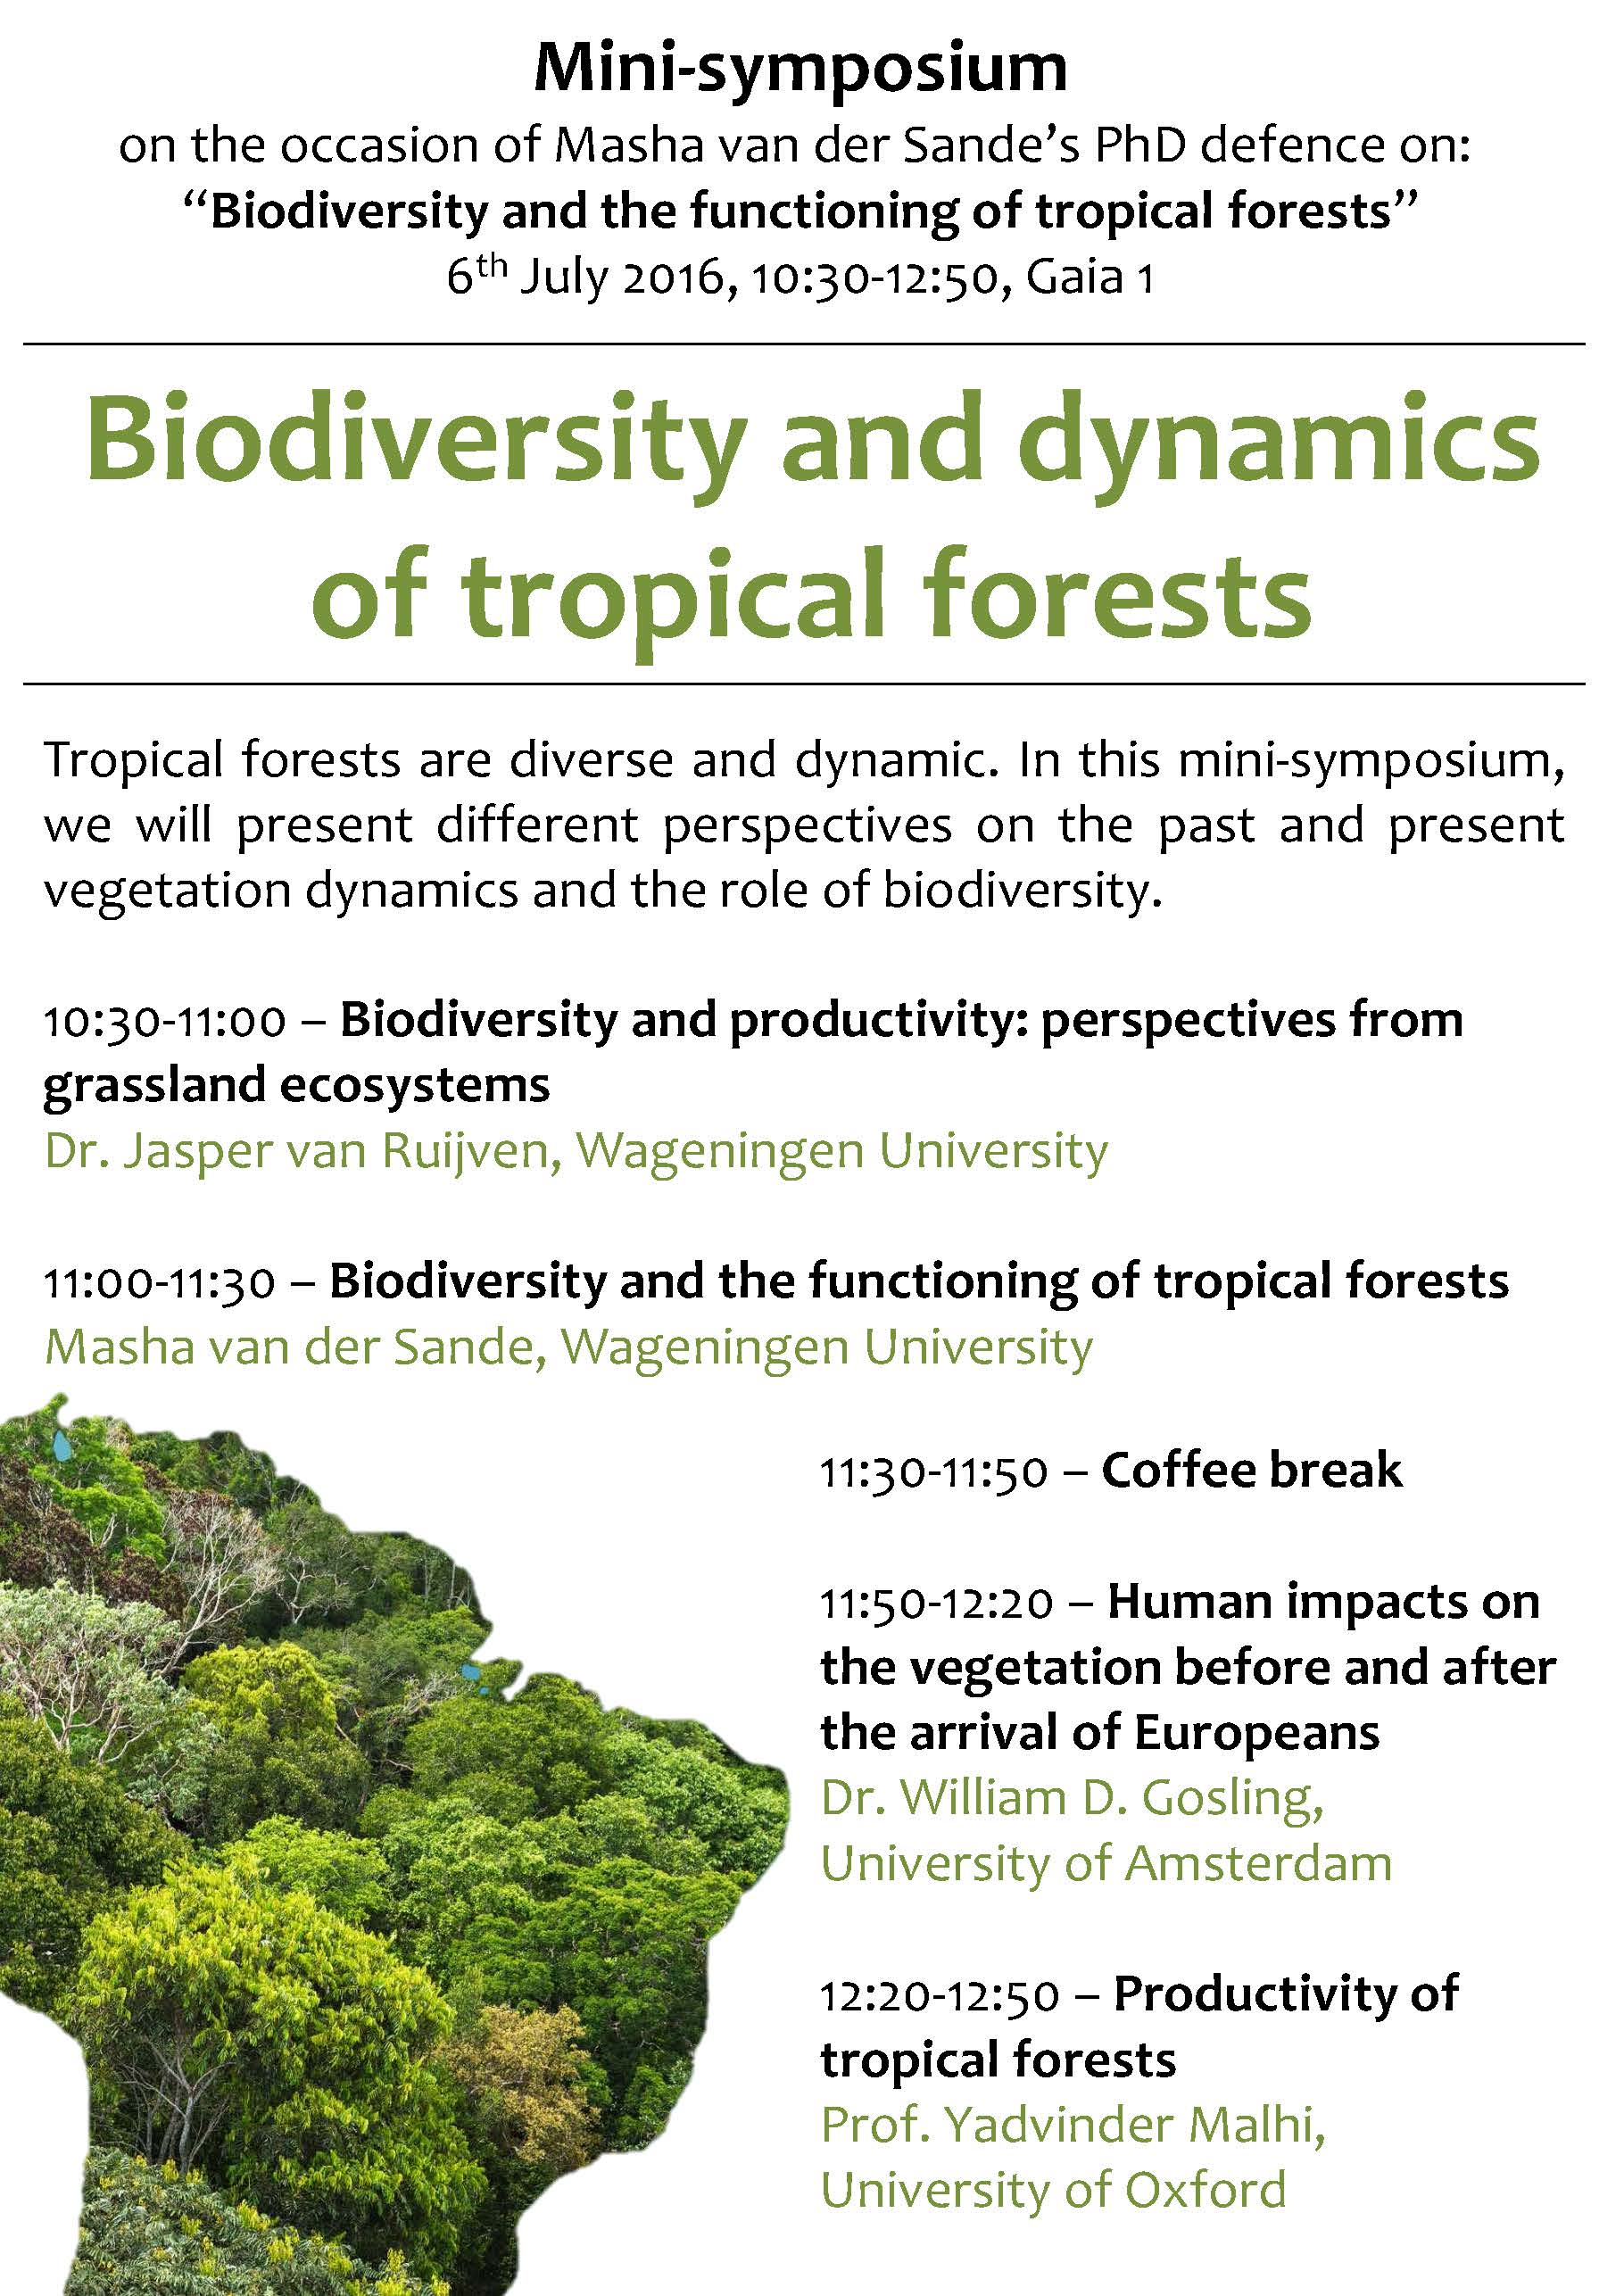 Mini-symposium 'Biodiversity and dynamics of tropical forests'